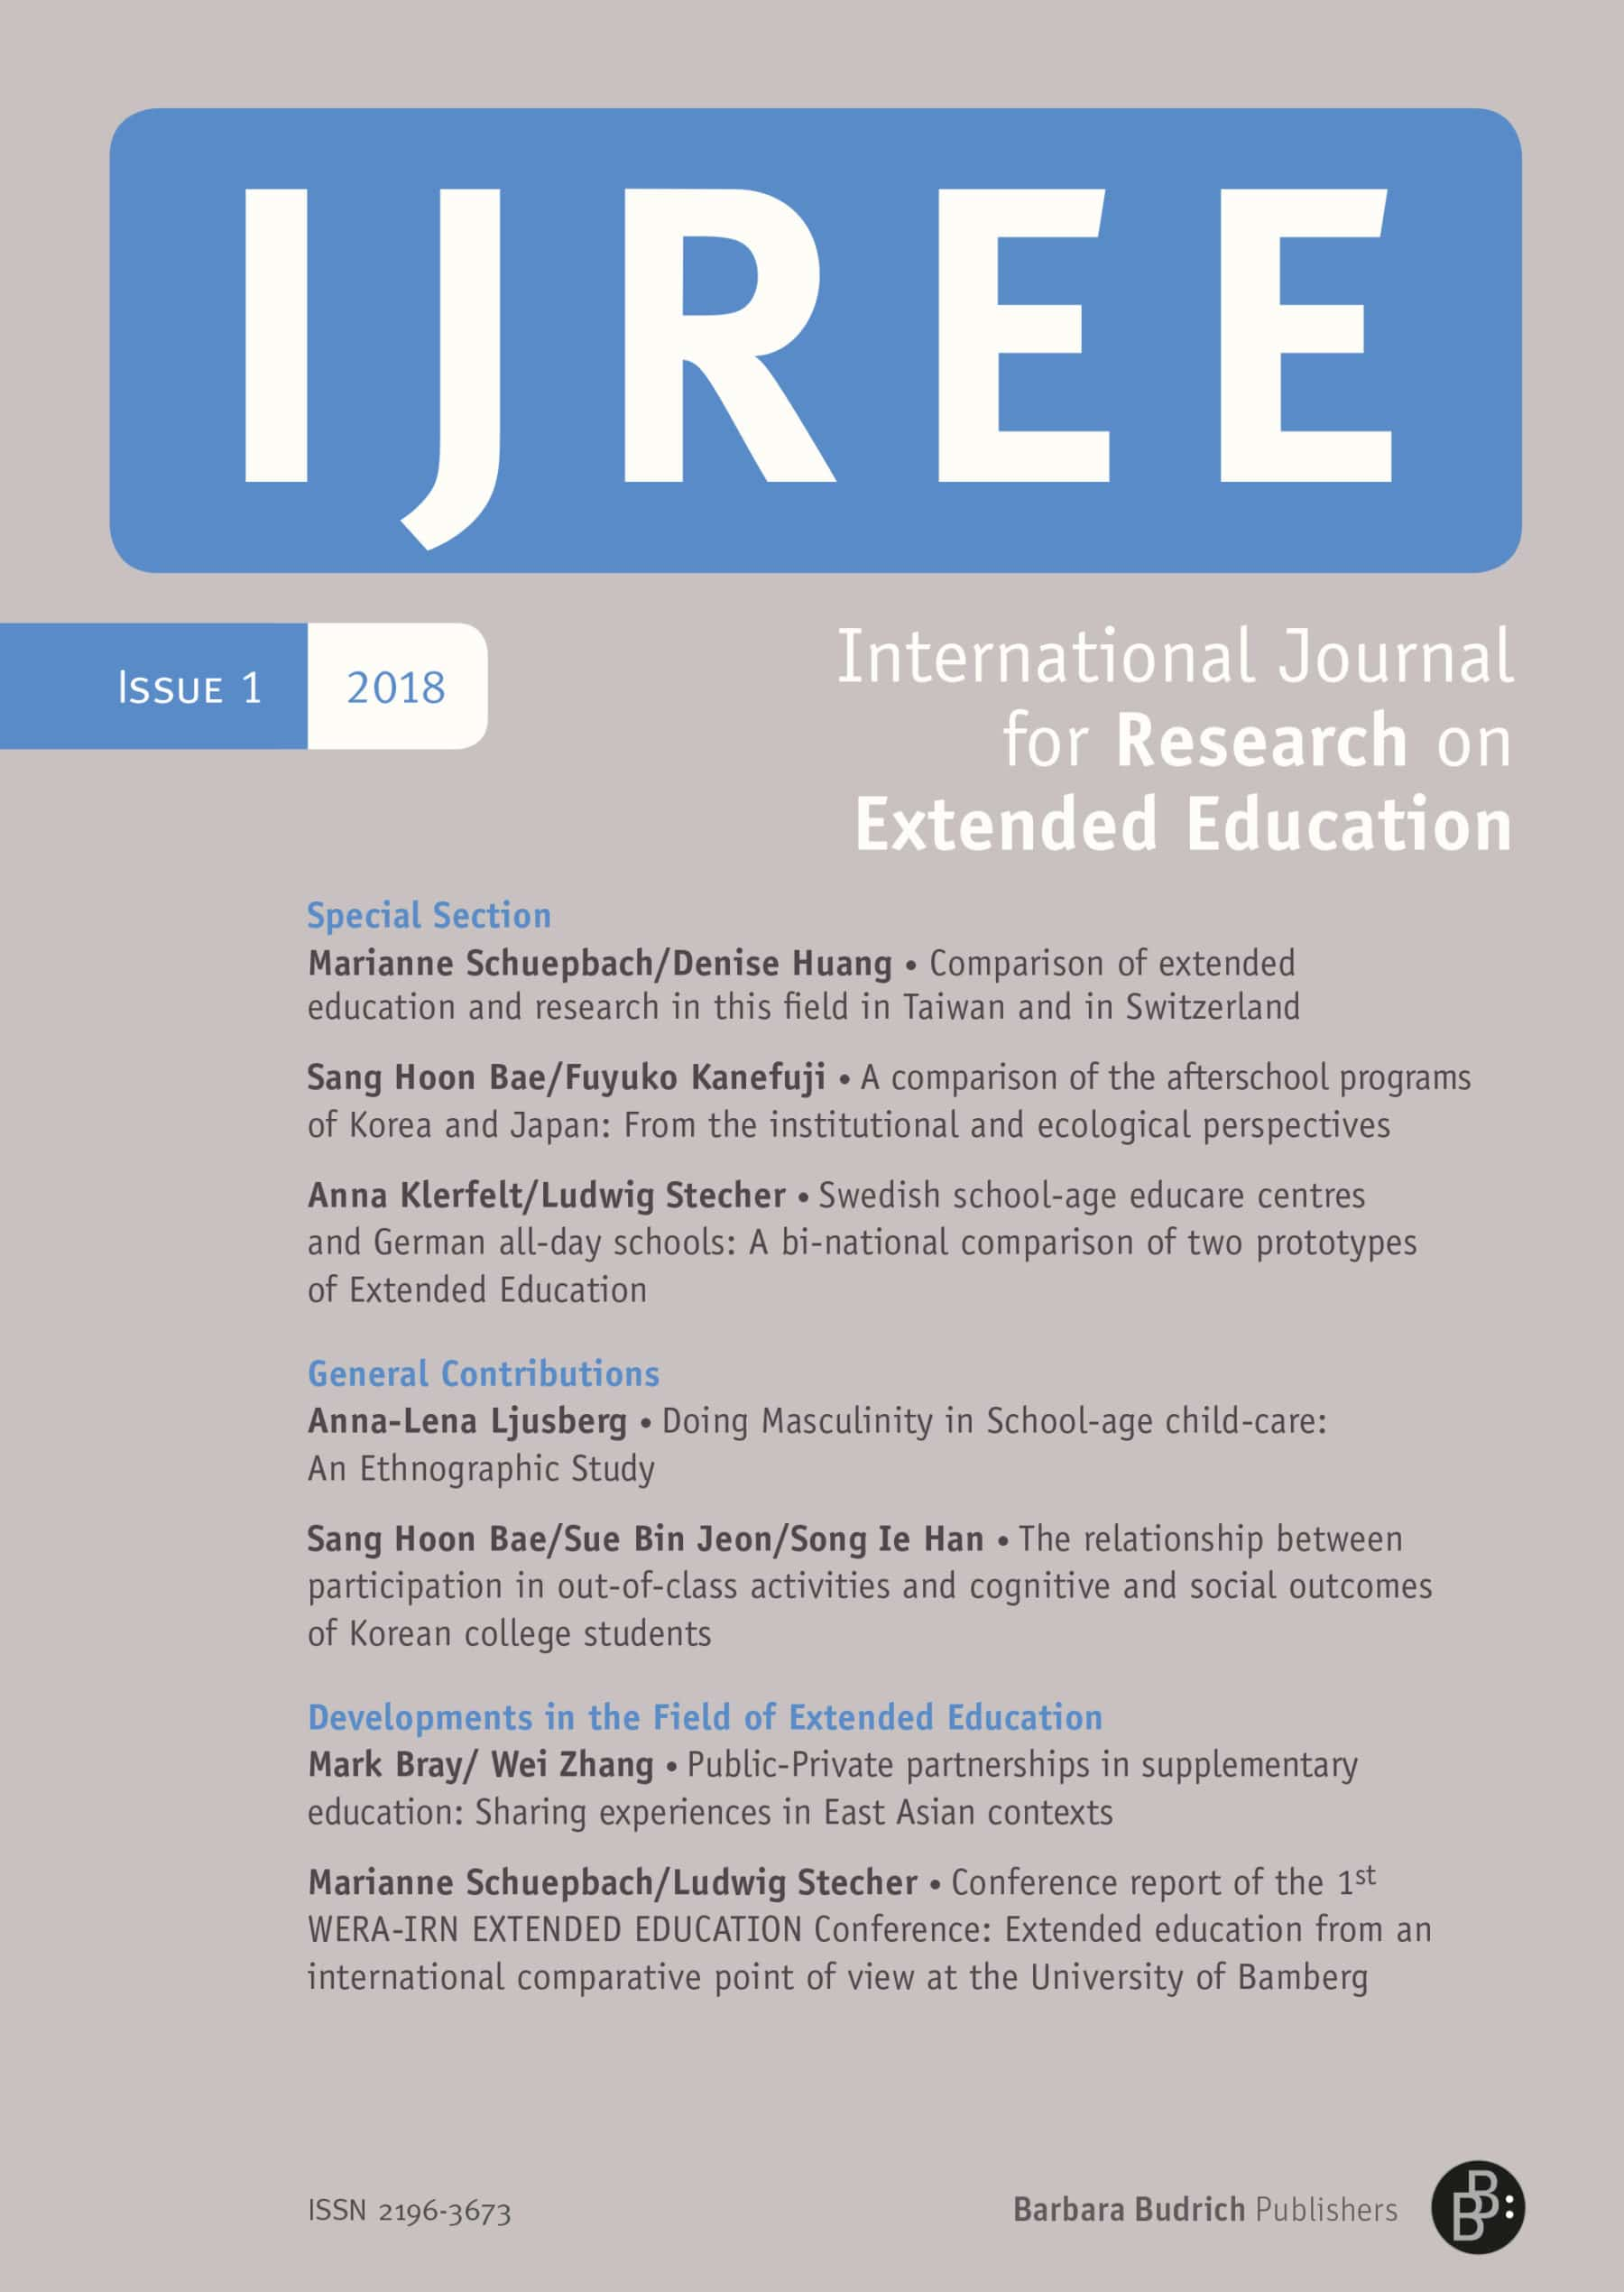 IJREE 1-2018 | Extended Education from an International Comparative Point of View